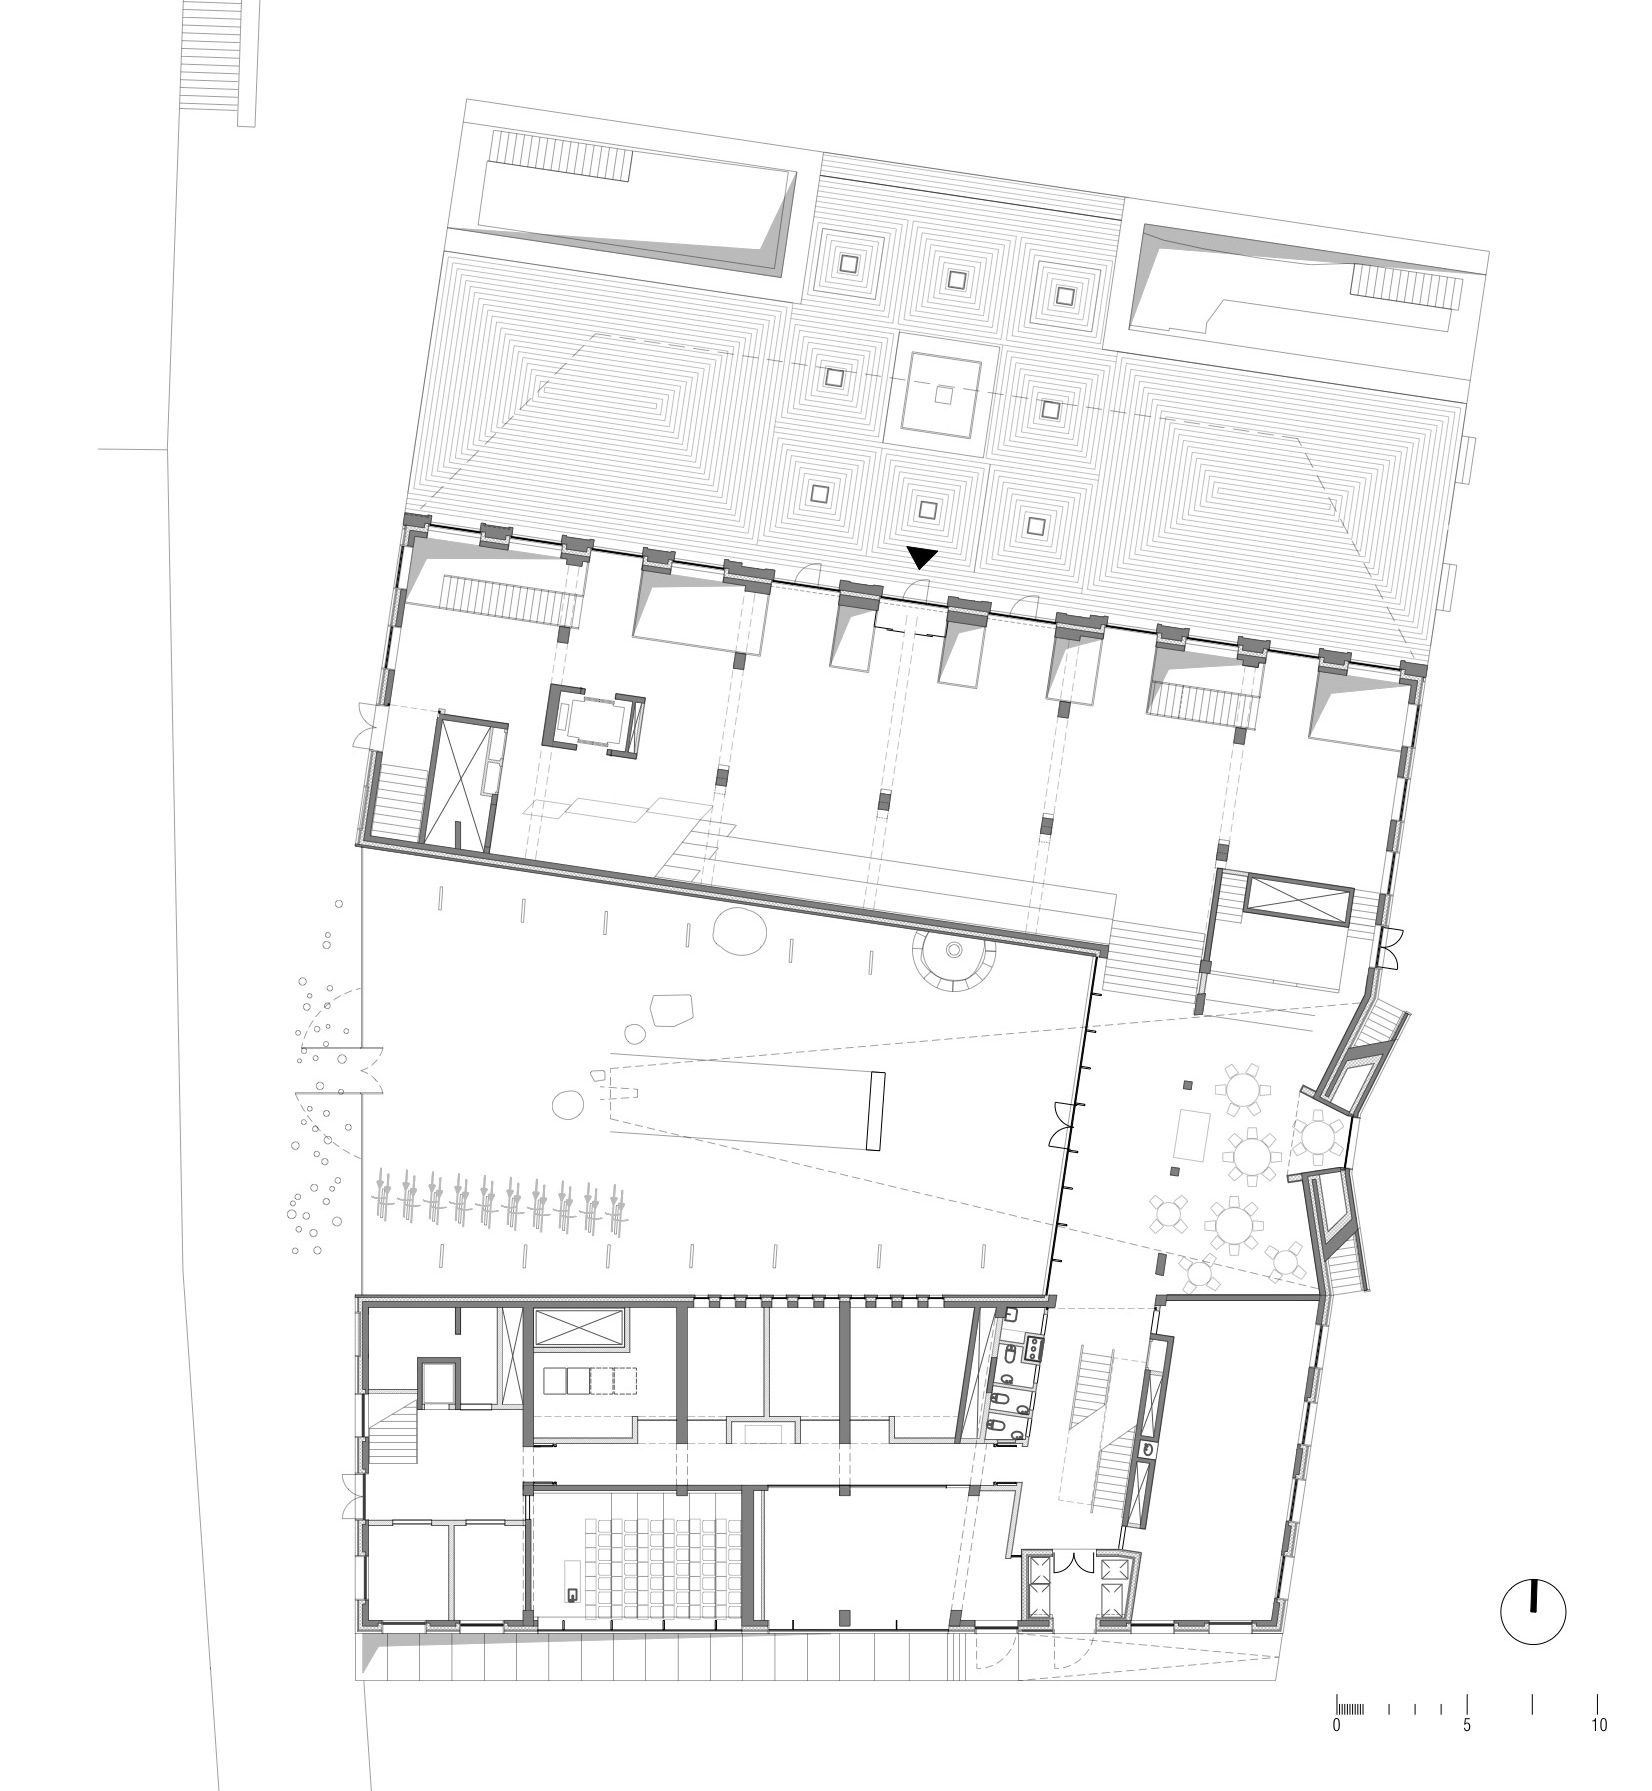 http://ad009cdnb.archdaily.net/wp-content/uploads/2013/08/52099b7ee8e44e80d1000041_narva-college-kavakava-architects_level_00_plan.png